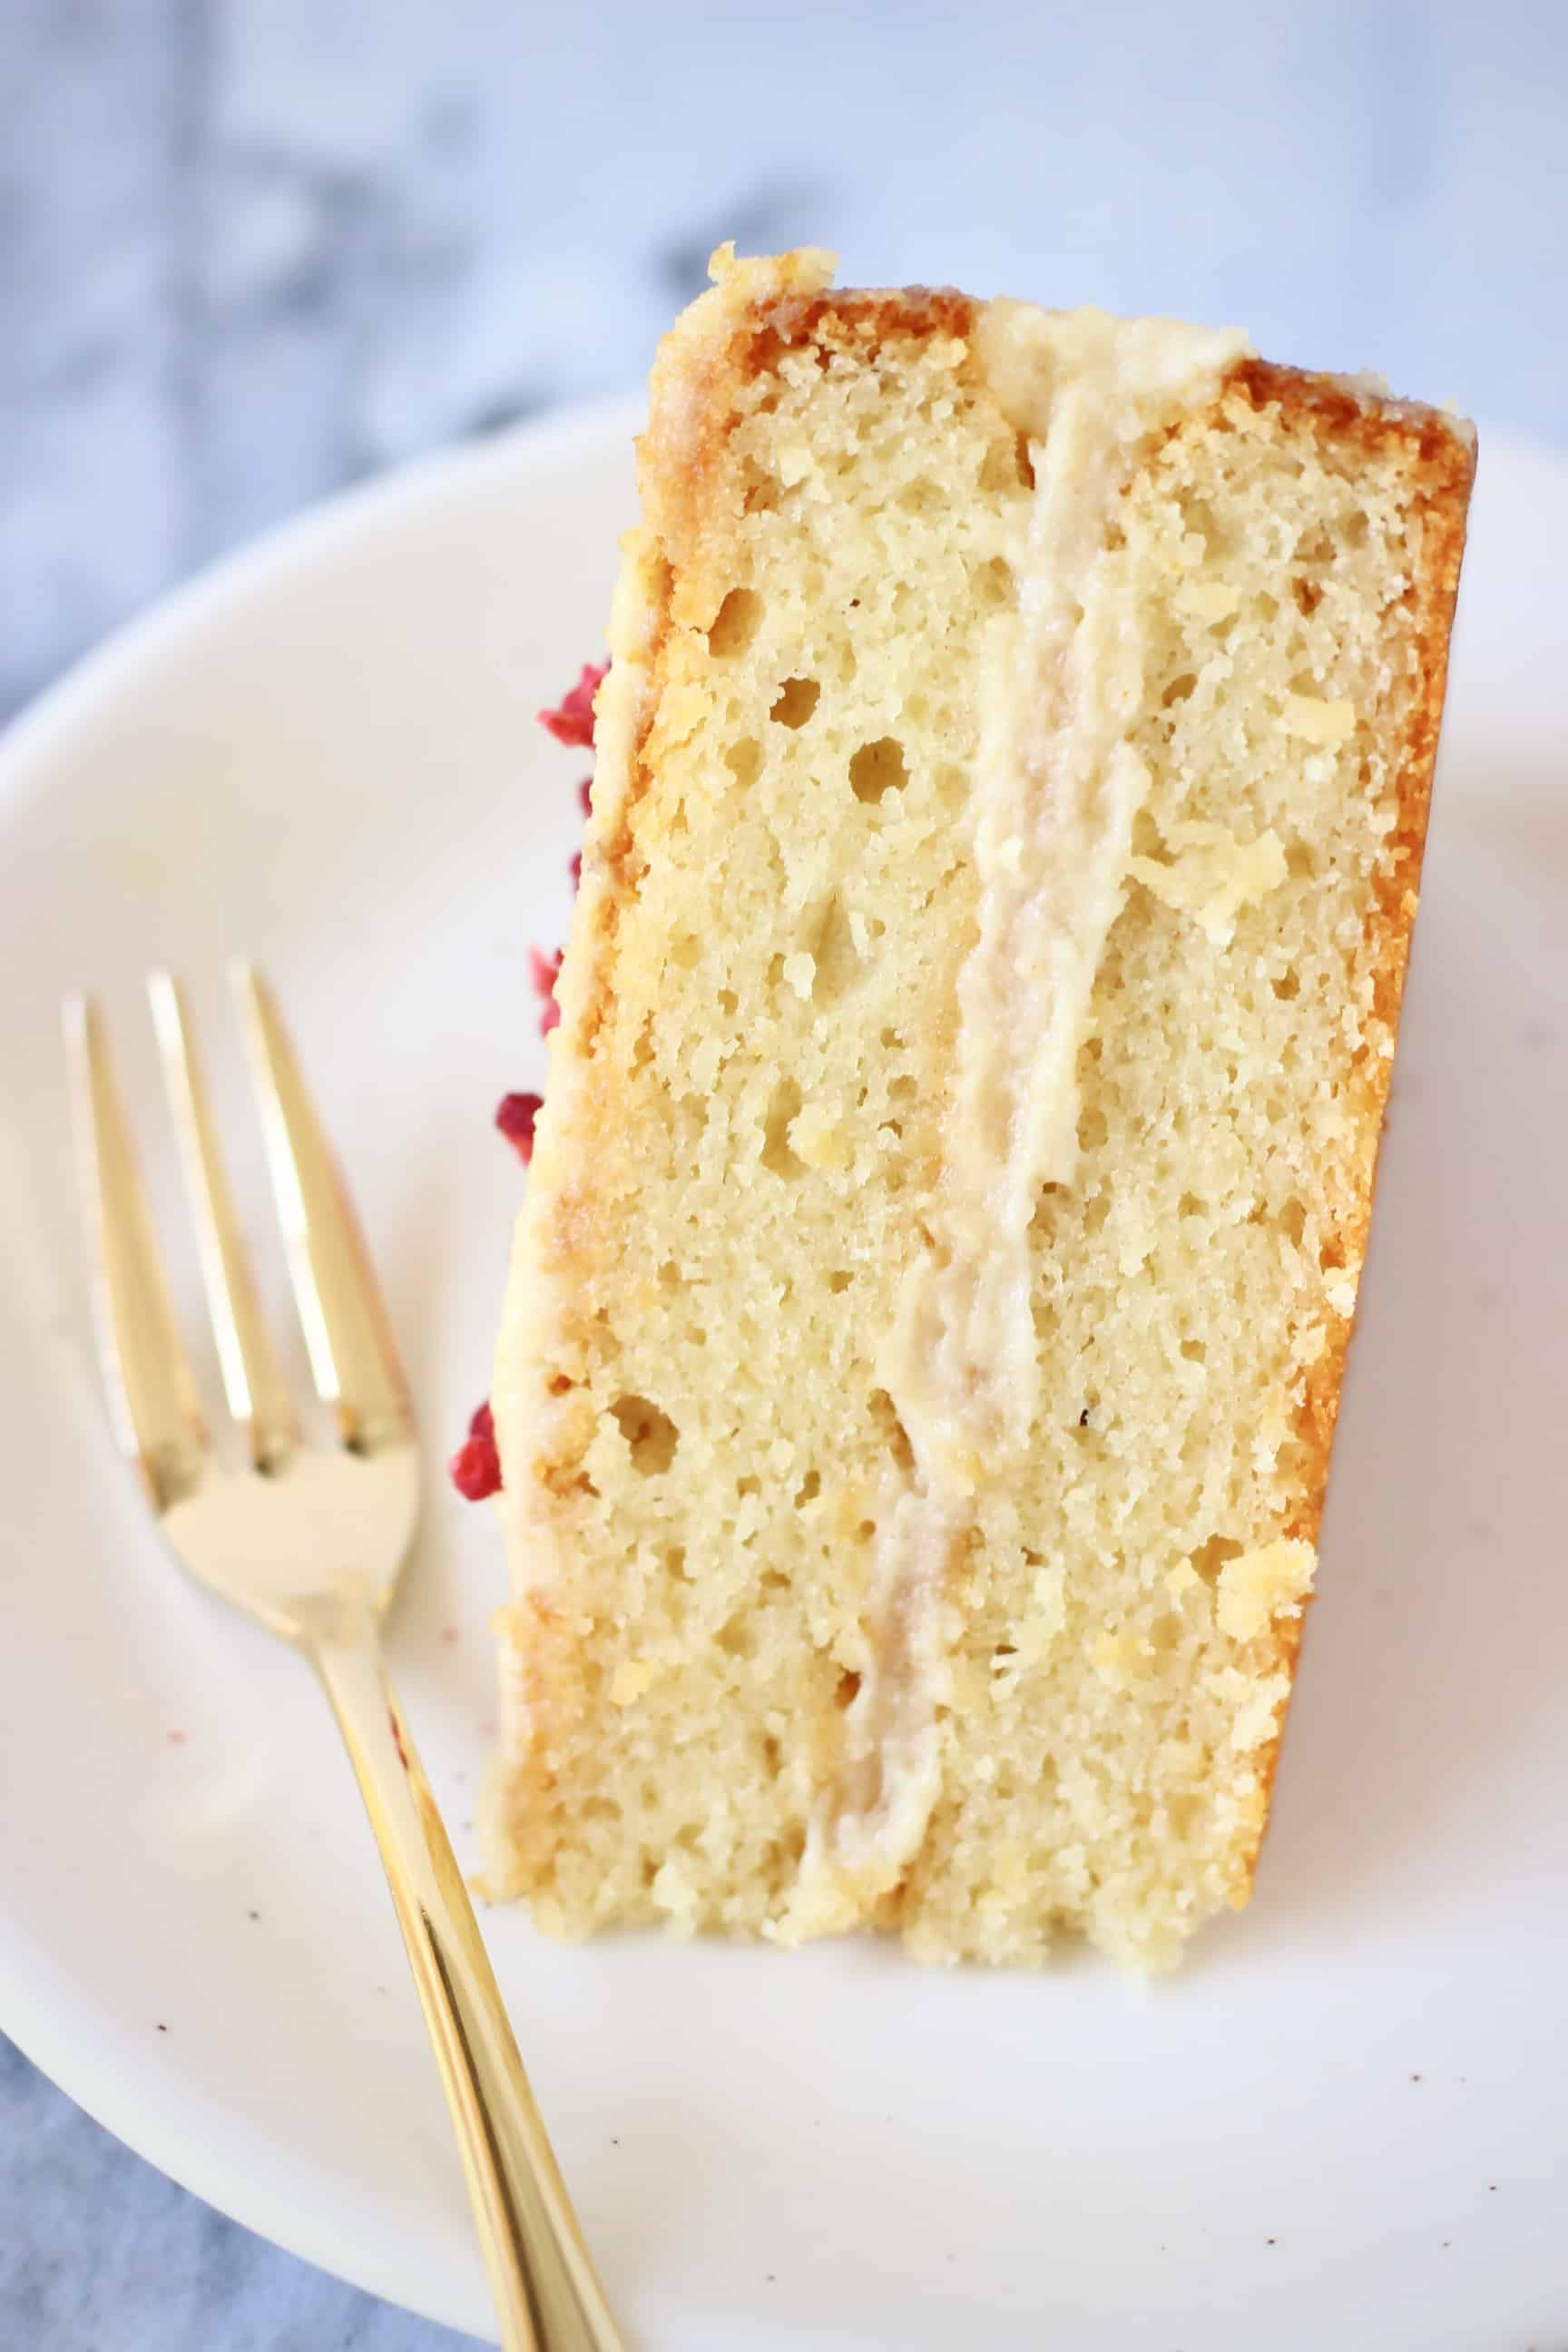 A slice of gluten-free vegan vanilla  cake with white frosting on a plate with a gold fork